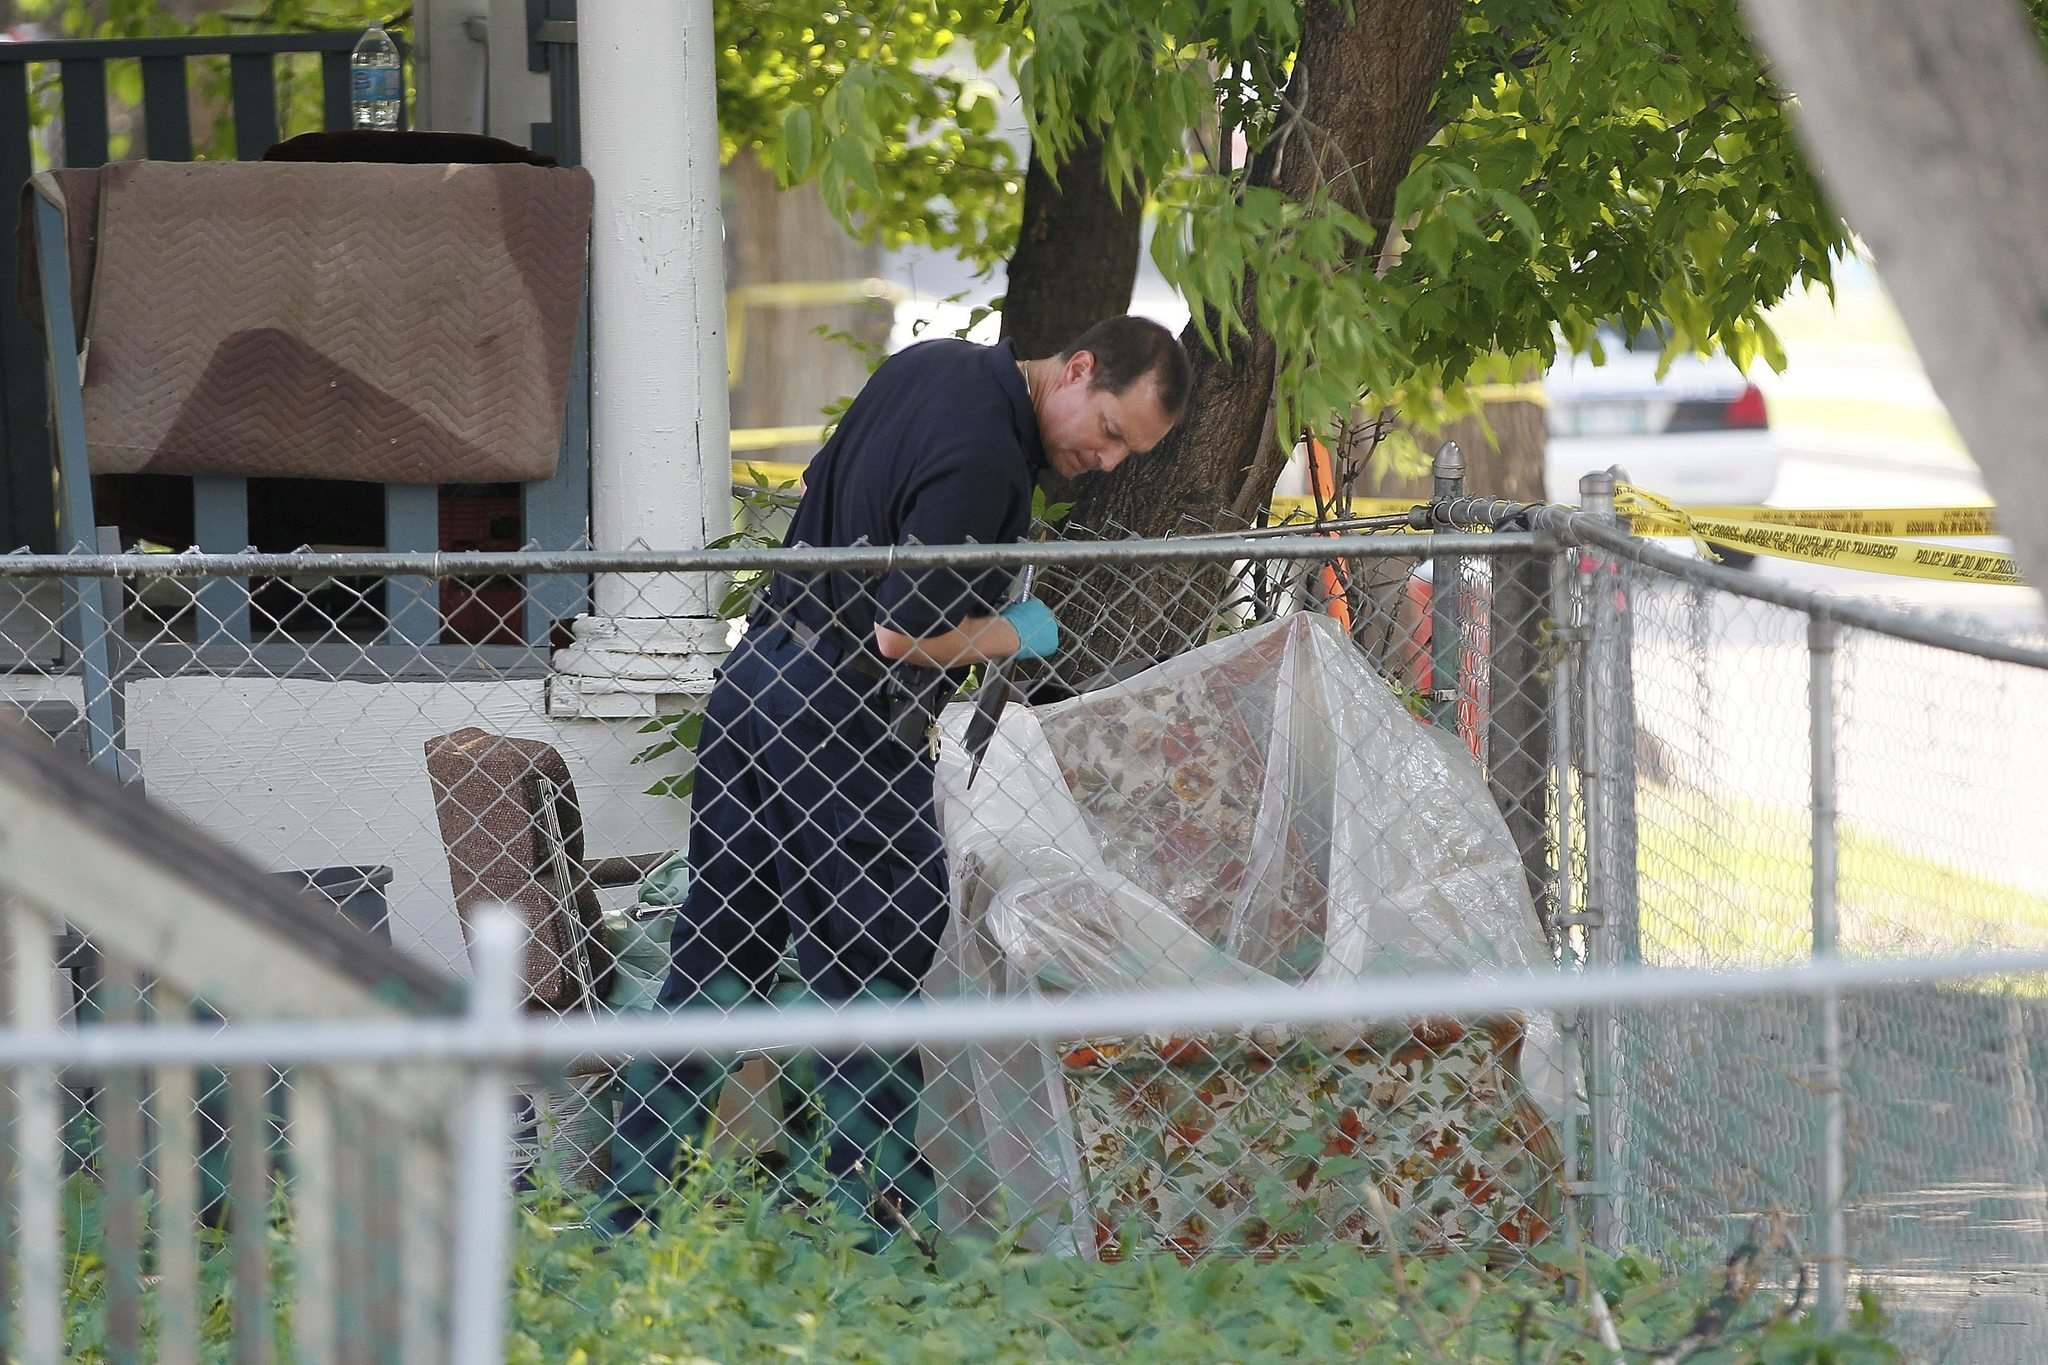 John Woods / Winnipeg Free Press files</p><p>Winnipeg police investigate at 375 Langside St., the scene of a murder, in June 2013.</p>